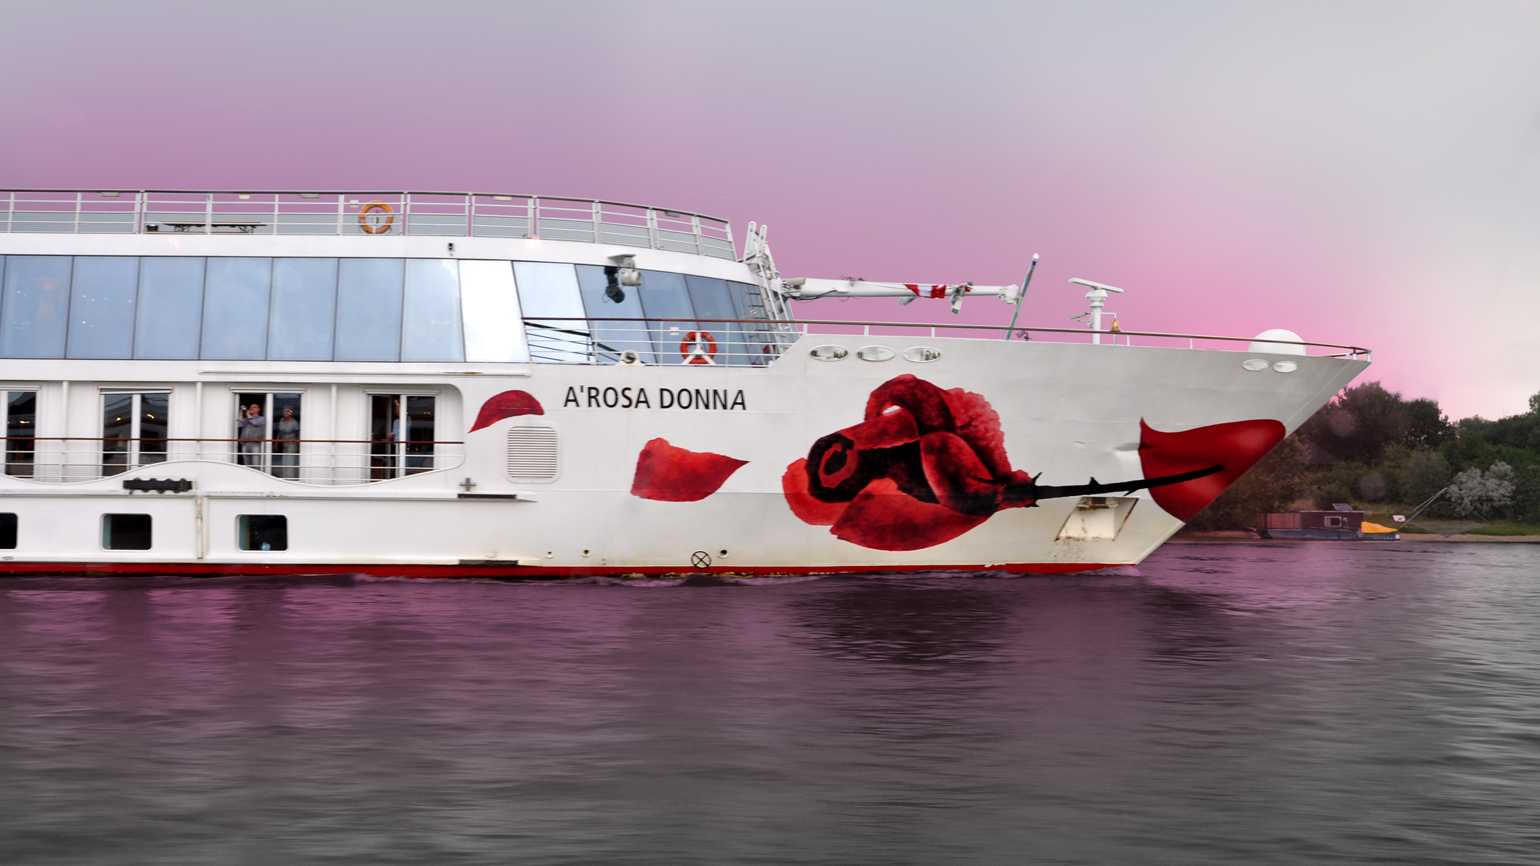 A cruise ship with A long-stemmed Rose and 'A'Rosa Donna' imprinted on the side.